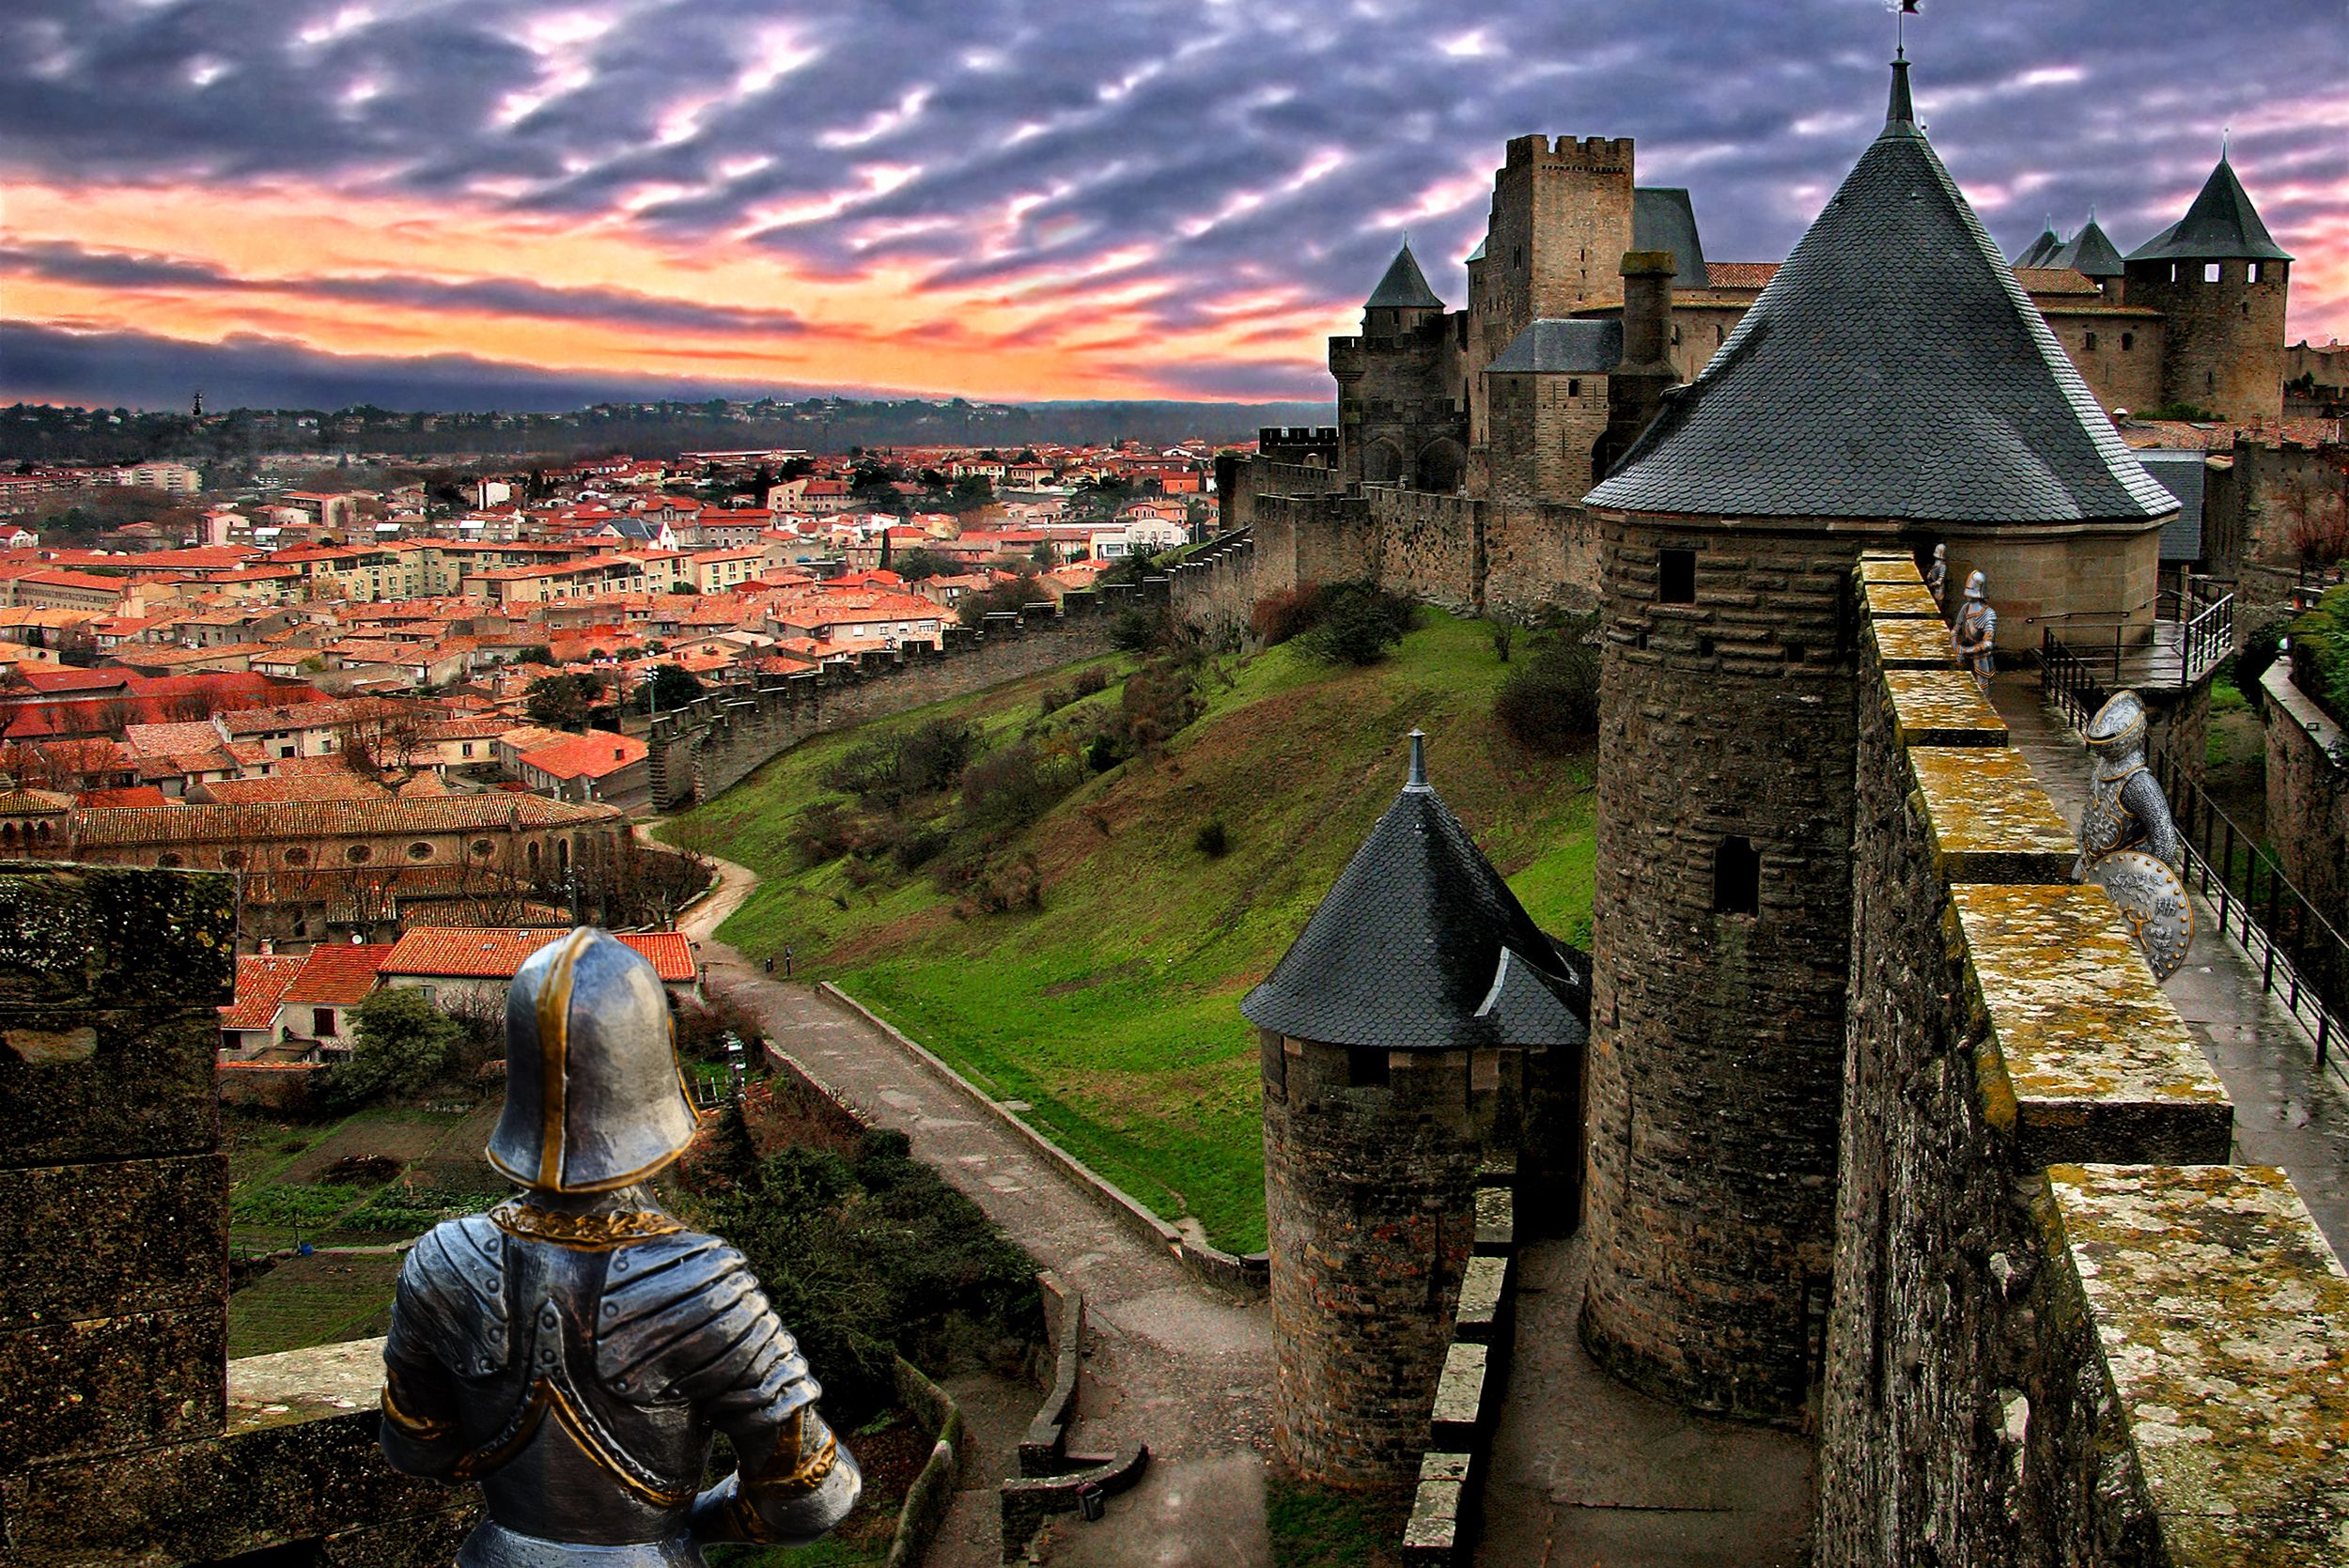 Join Labyrinth's Kate Mosse on a tour of magical Carcassonne